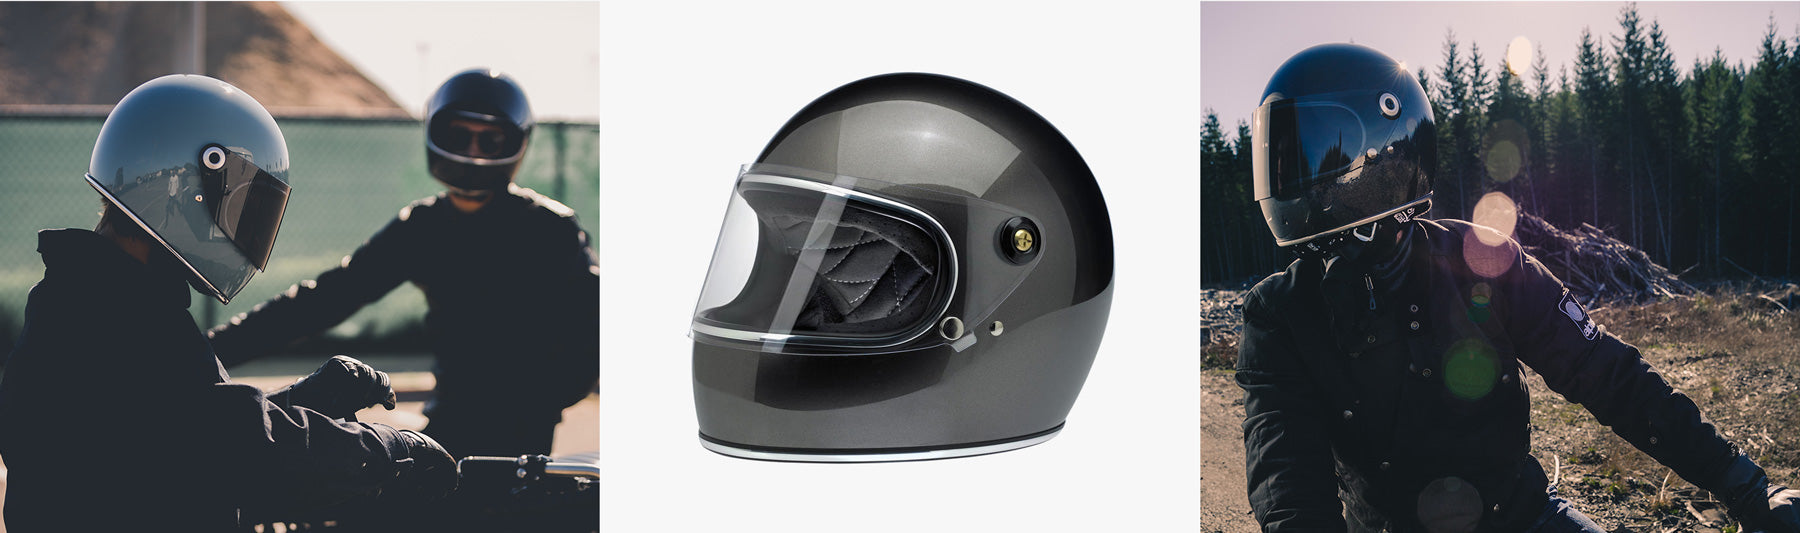 Biltwell Gringo S Helmet from British Customs